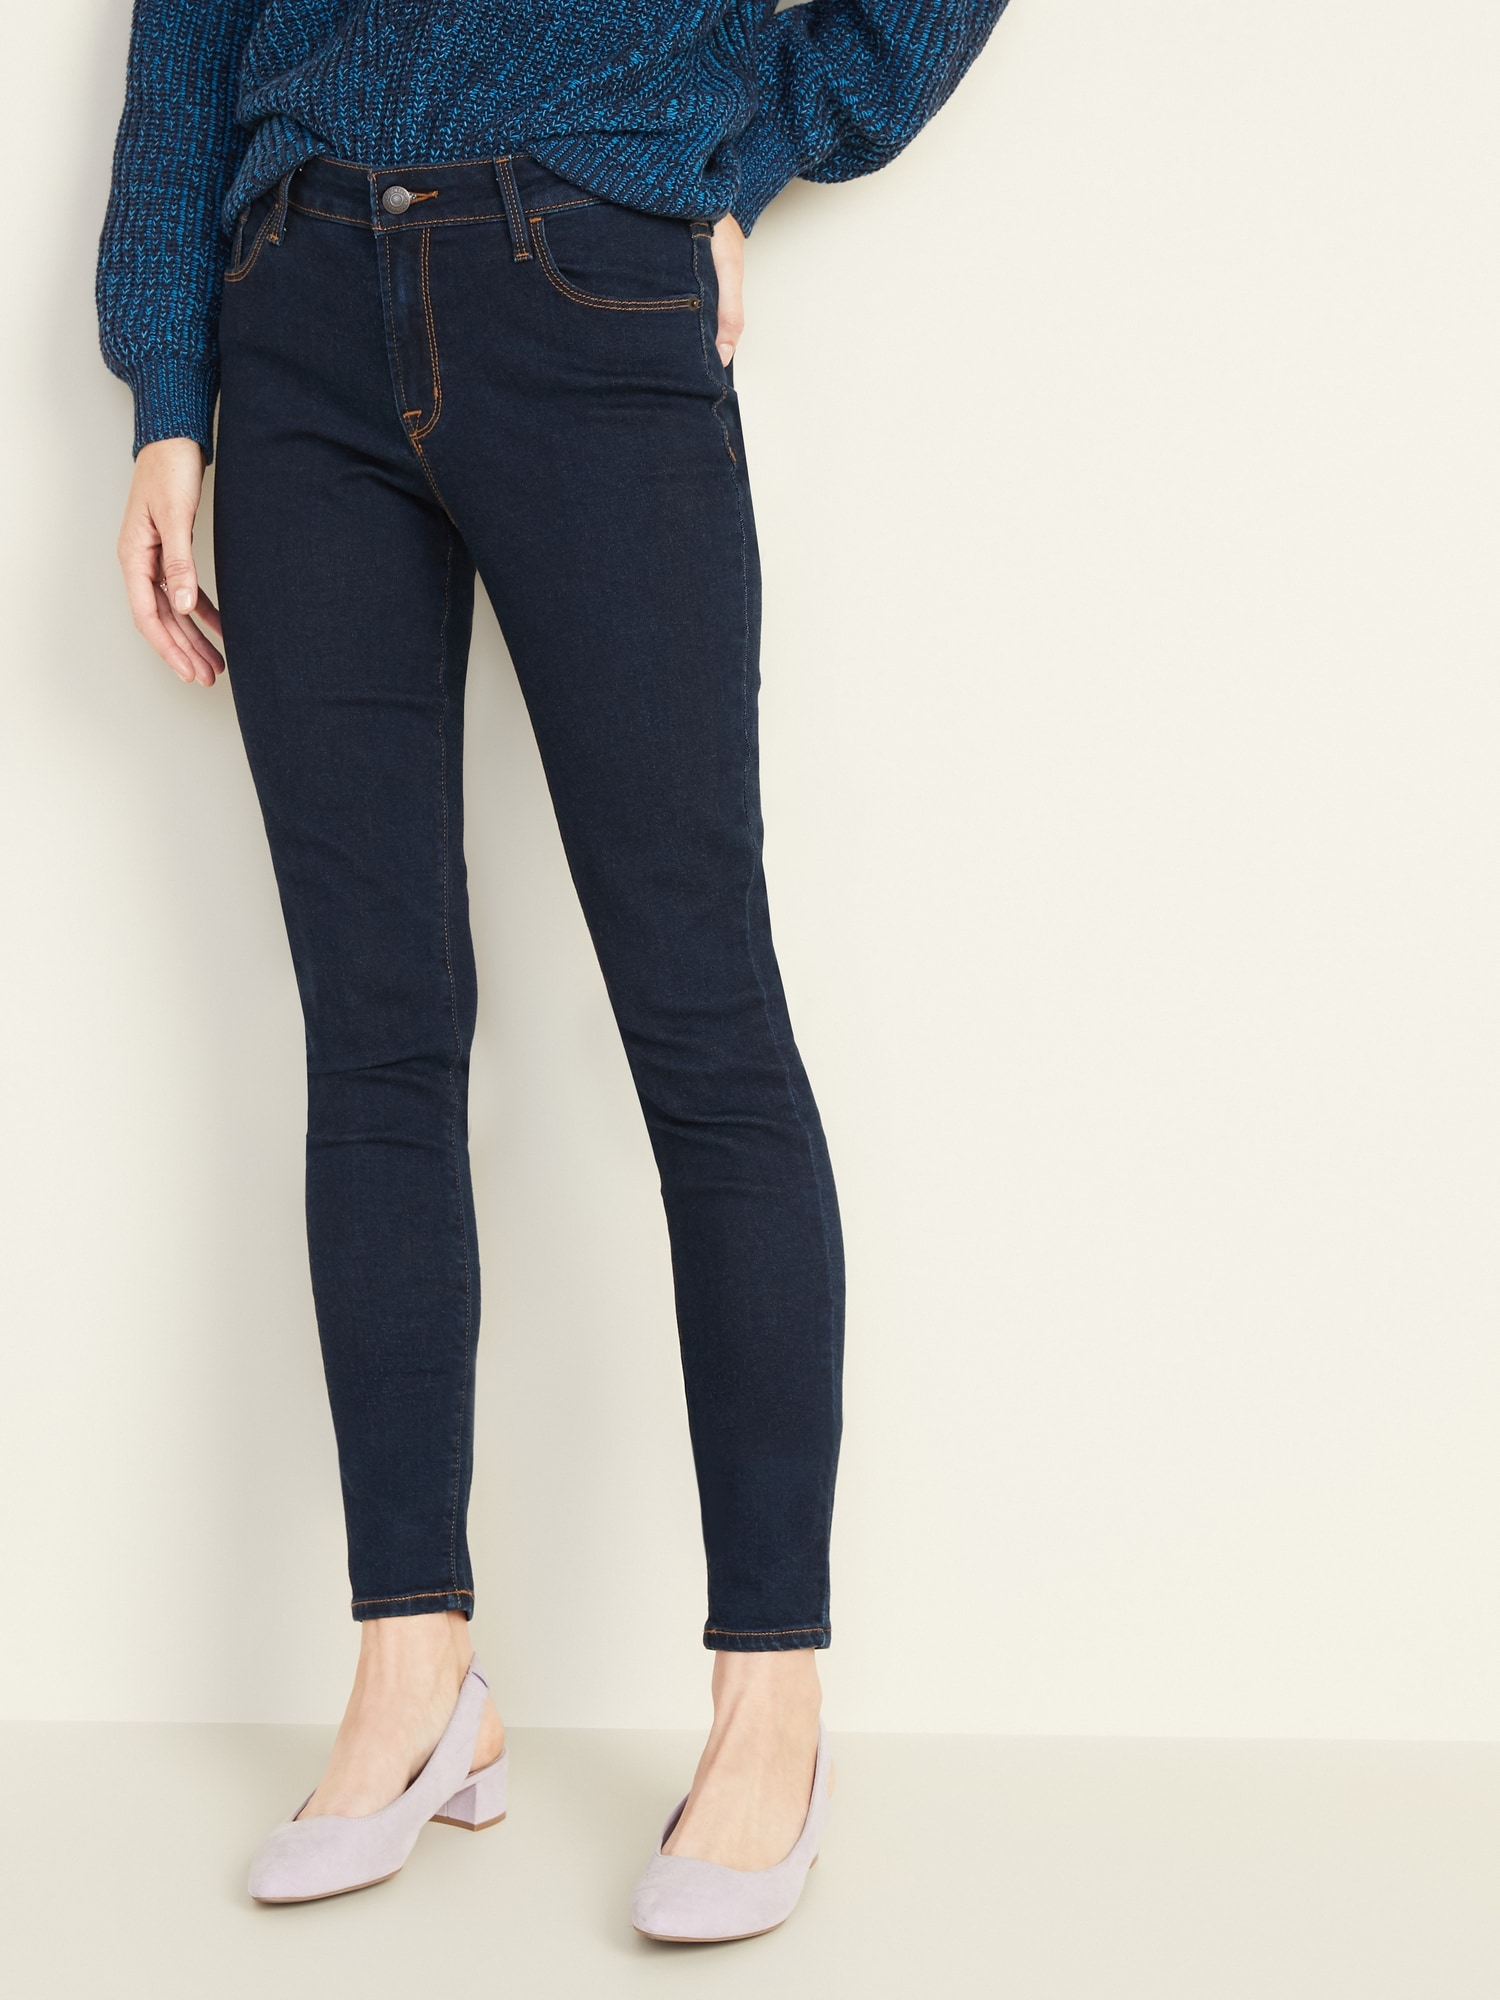 adc35630ff Mid-Rise Rockstar Super Skinny Jeans for Women